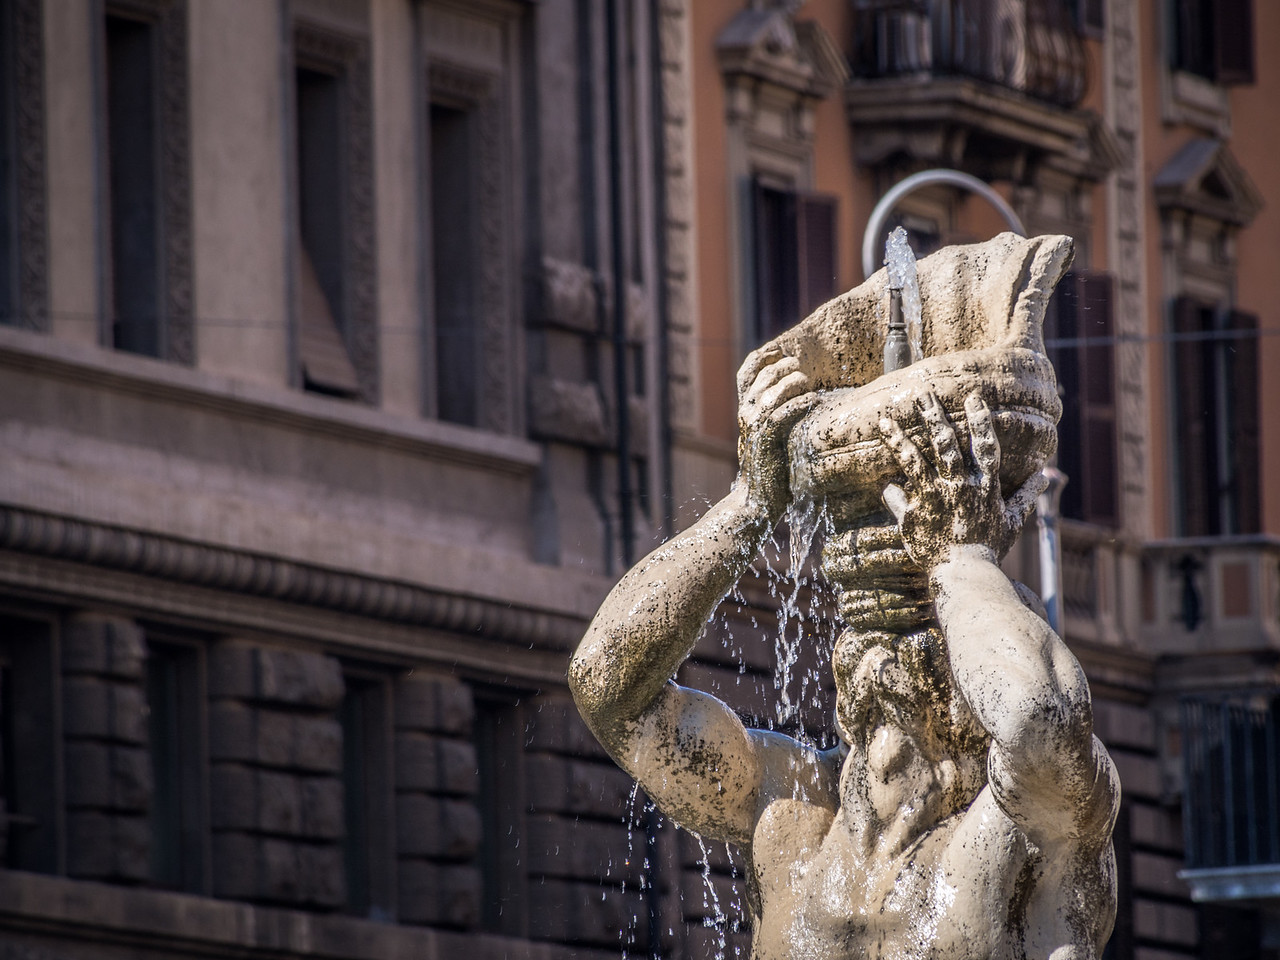 Thirsty Statue of Barberini, Rome